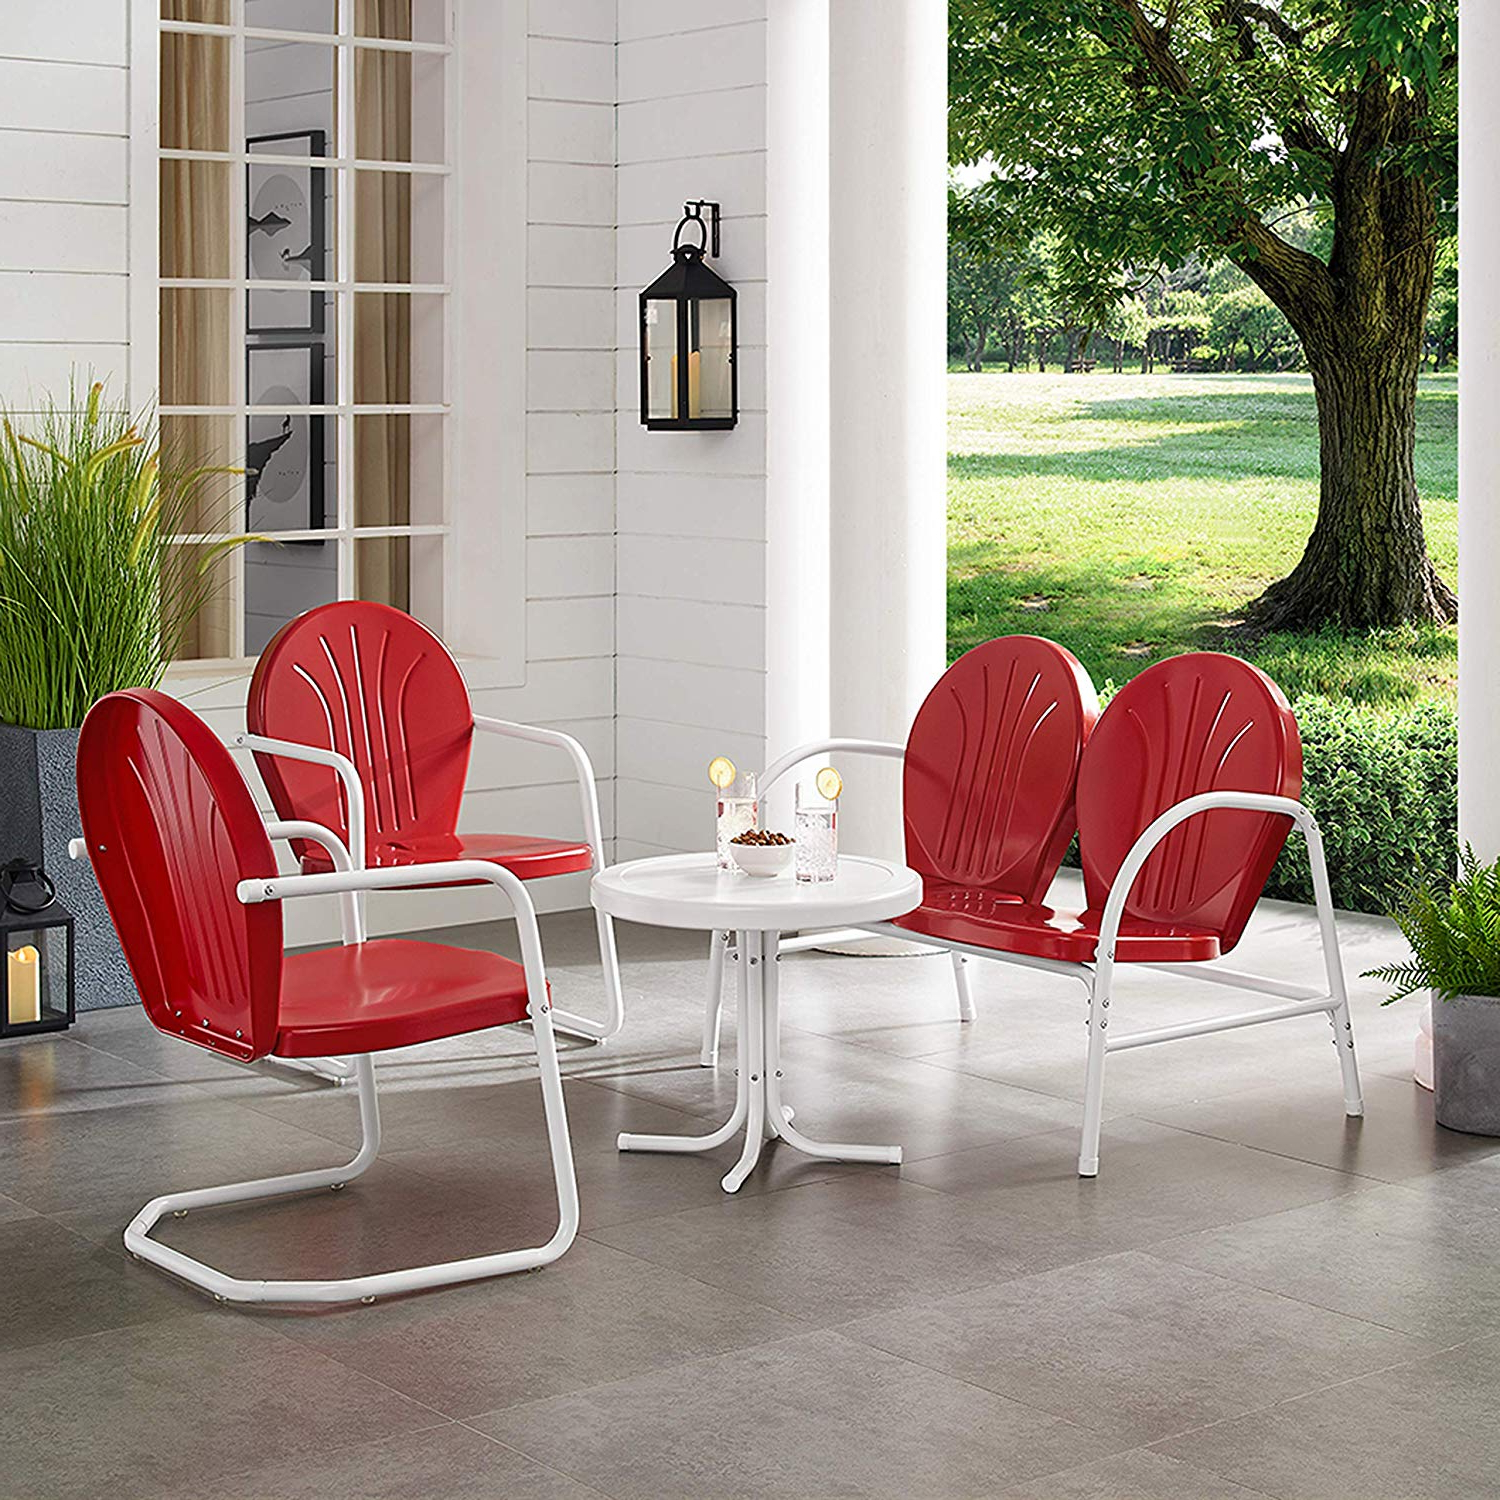 Crosley Furniture Griffith 4 Piece Metal Outdoor Conversation Set With Table, Loveseat, And 2 Chairs – Red With Regard To Well Known Bate Red Retro 3 Piece Dining Sets (View 7 of 20)